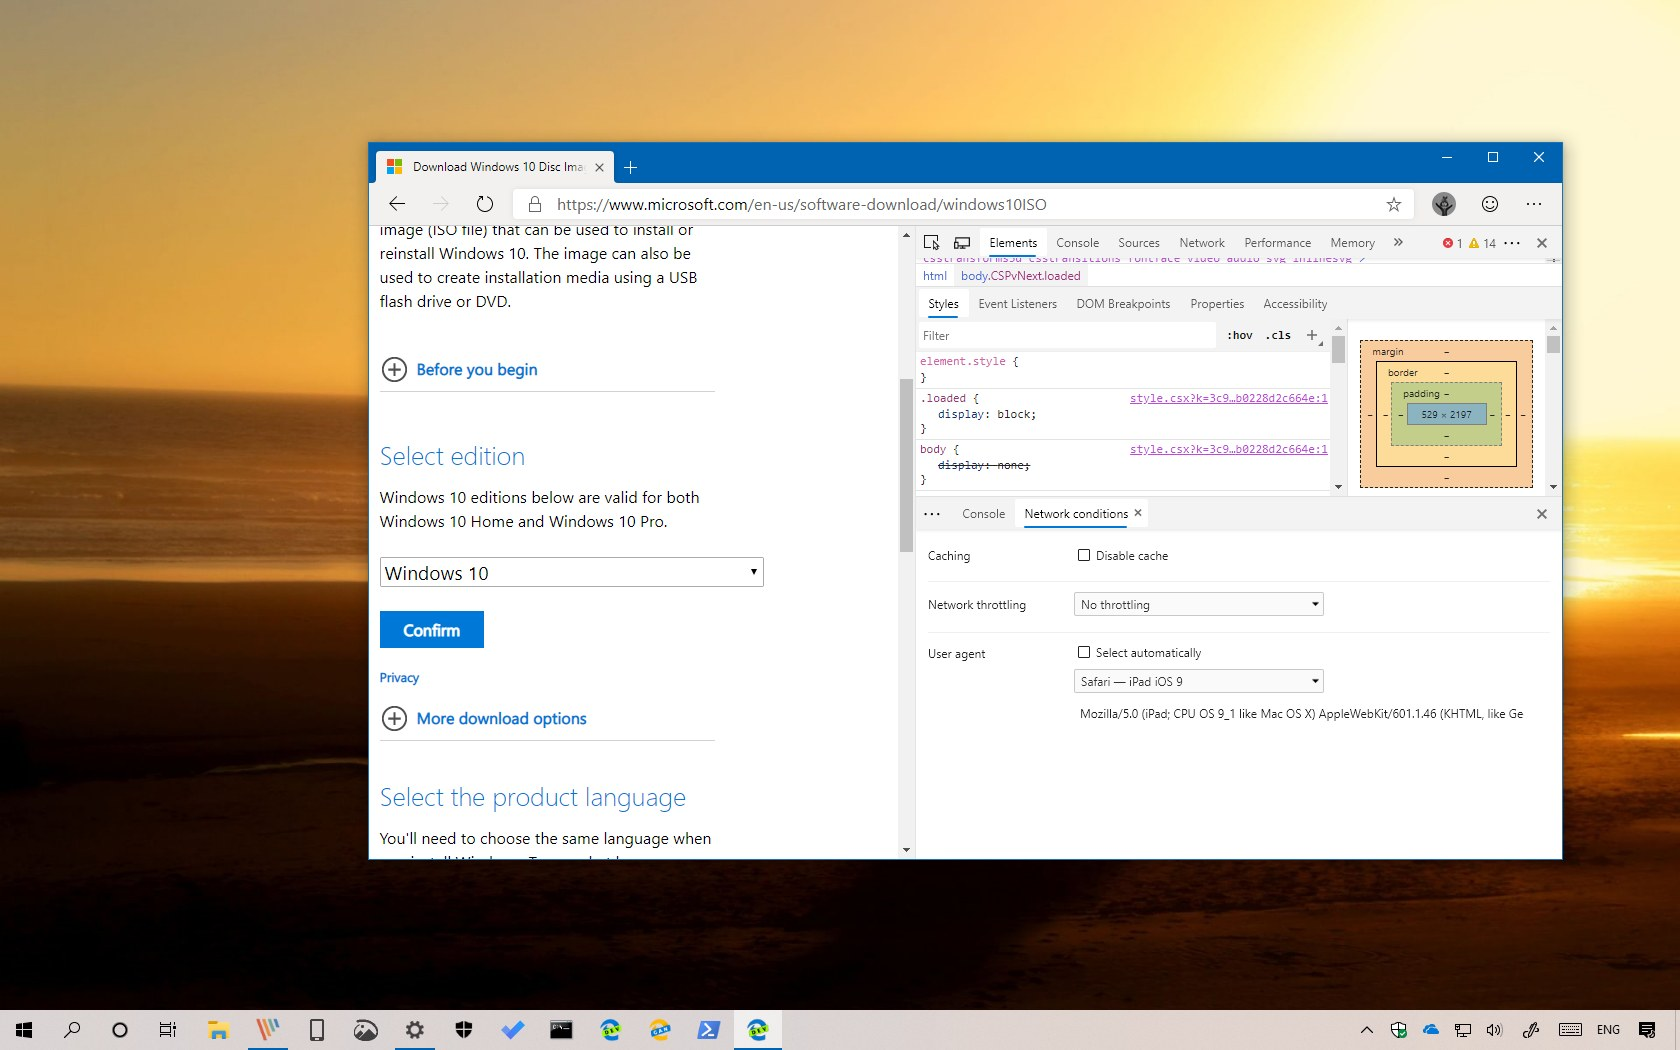 Download Windows 10 ISO file directly from Microsoft